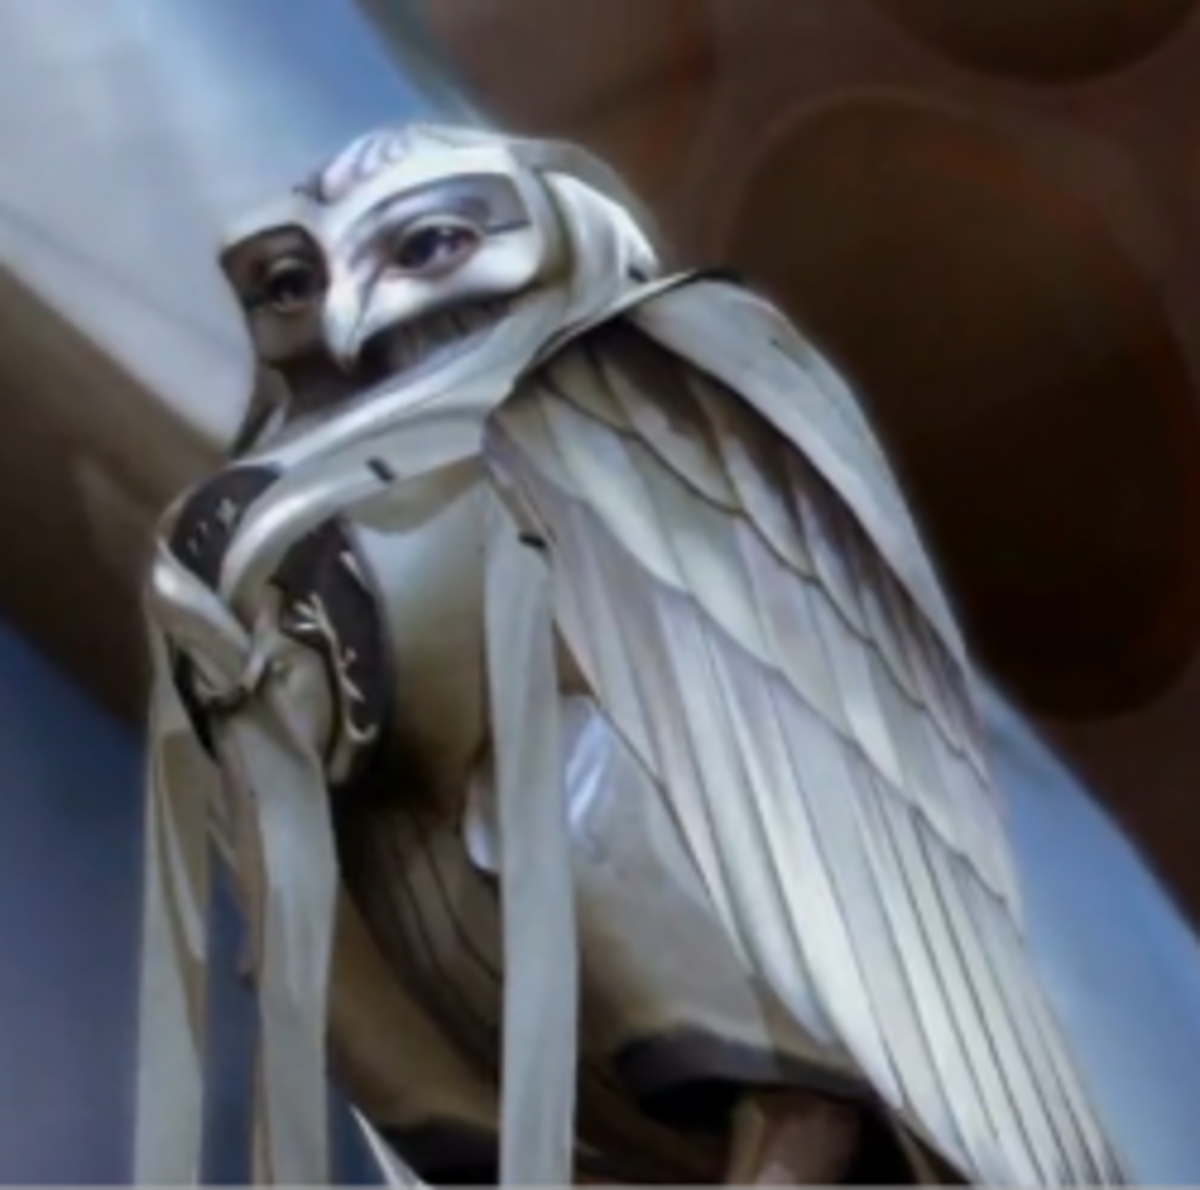 So What IS Menrva, the Owl in Final Fantasy XIII?